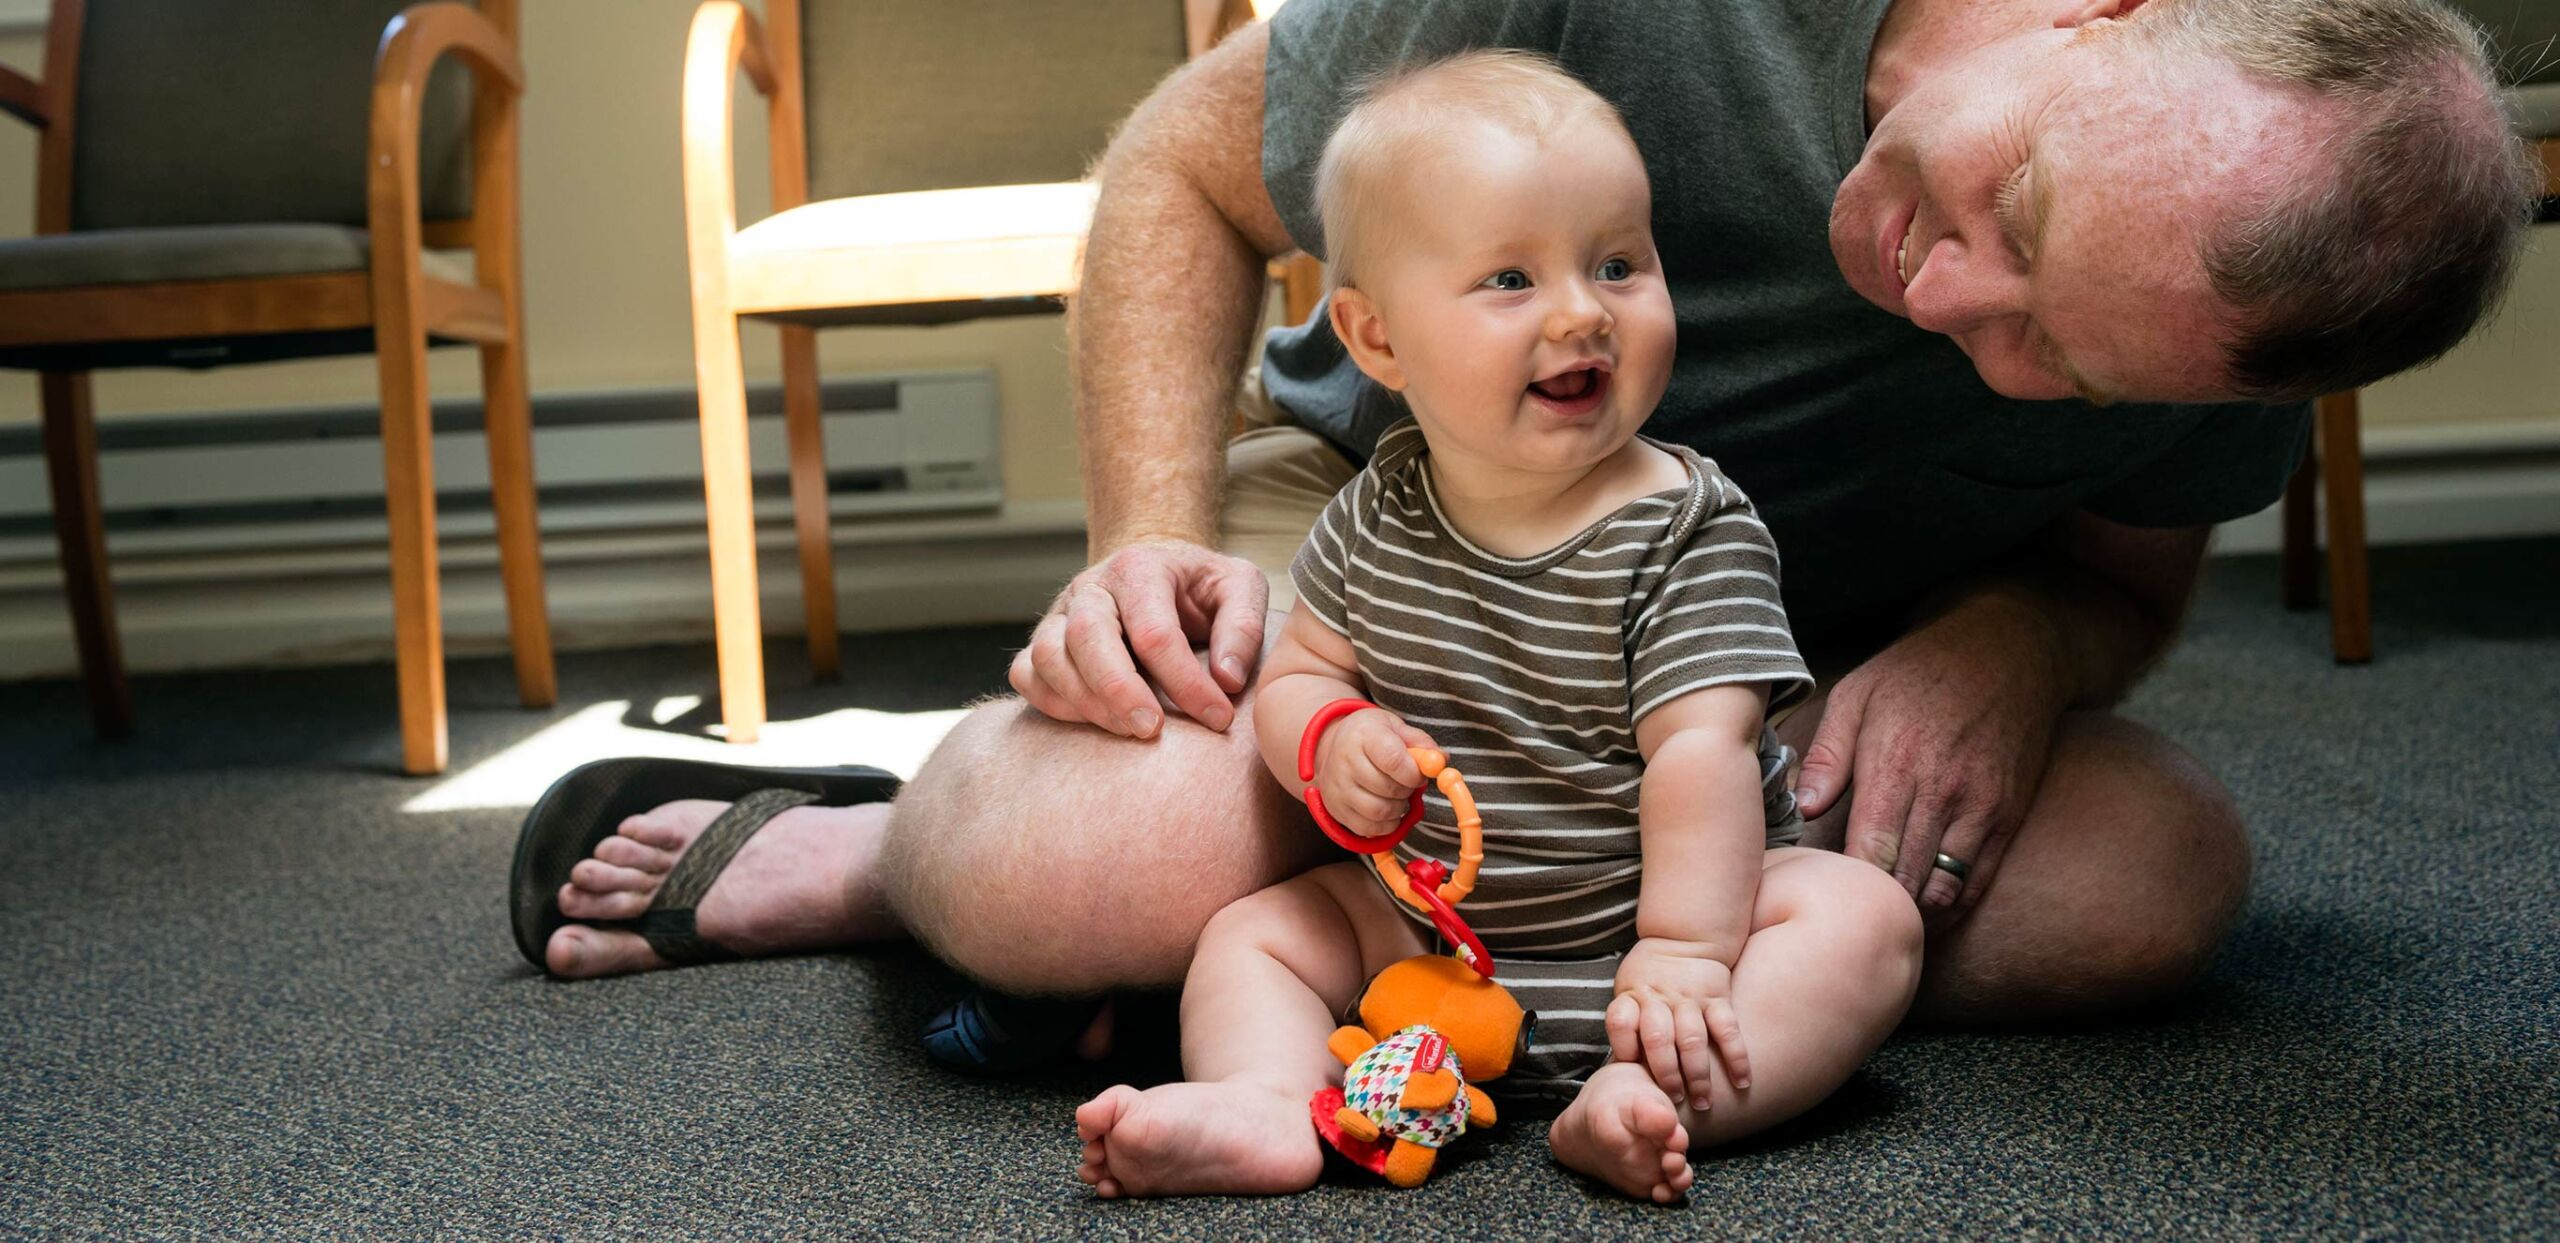 Father plays with baby at a parent support group meeting at Cooley Dickinson Hospital, 30 Locust Street, Northampton, MA 01060.